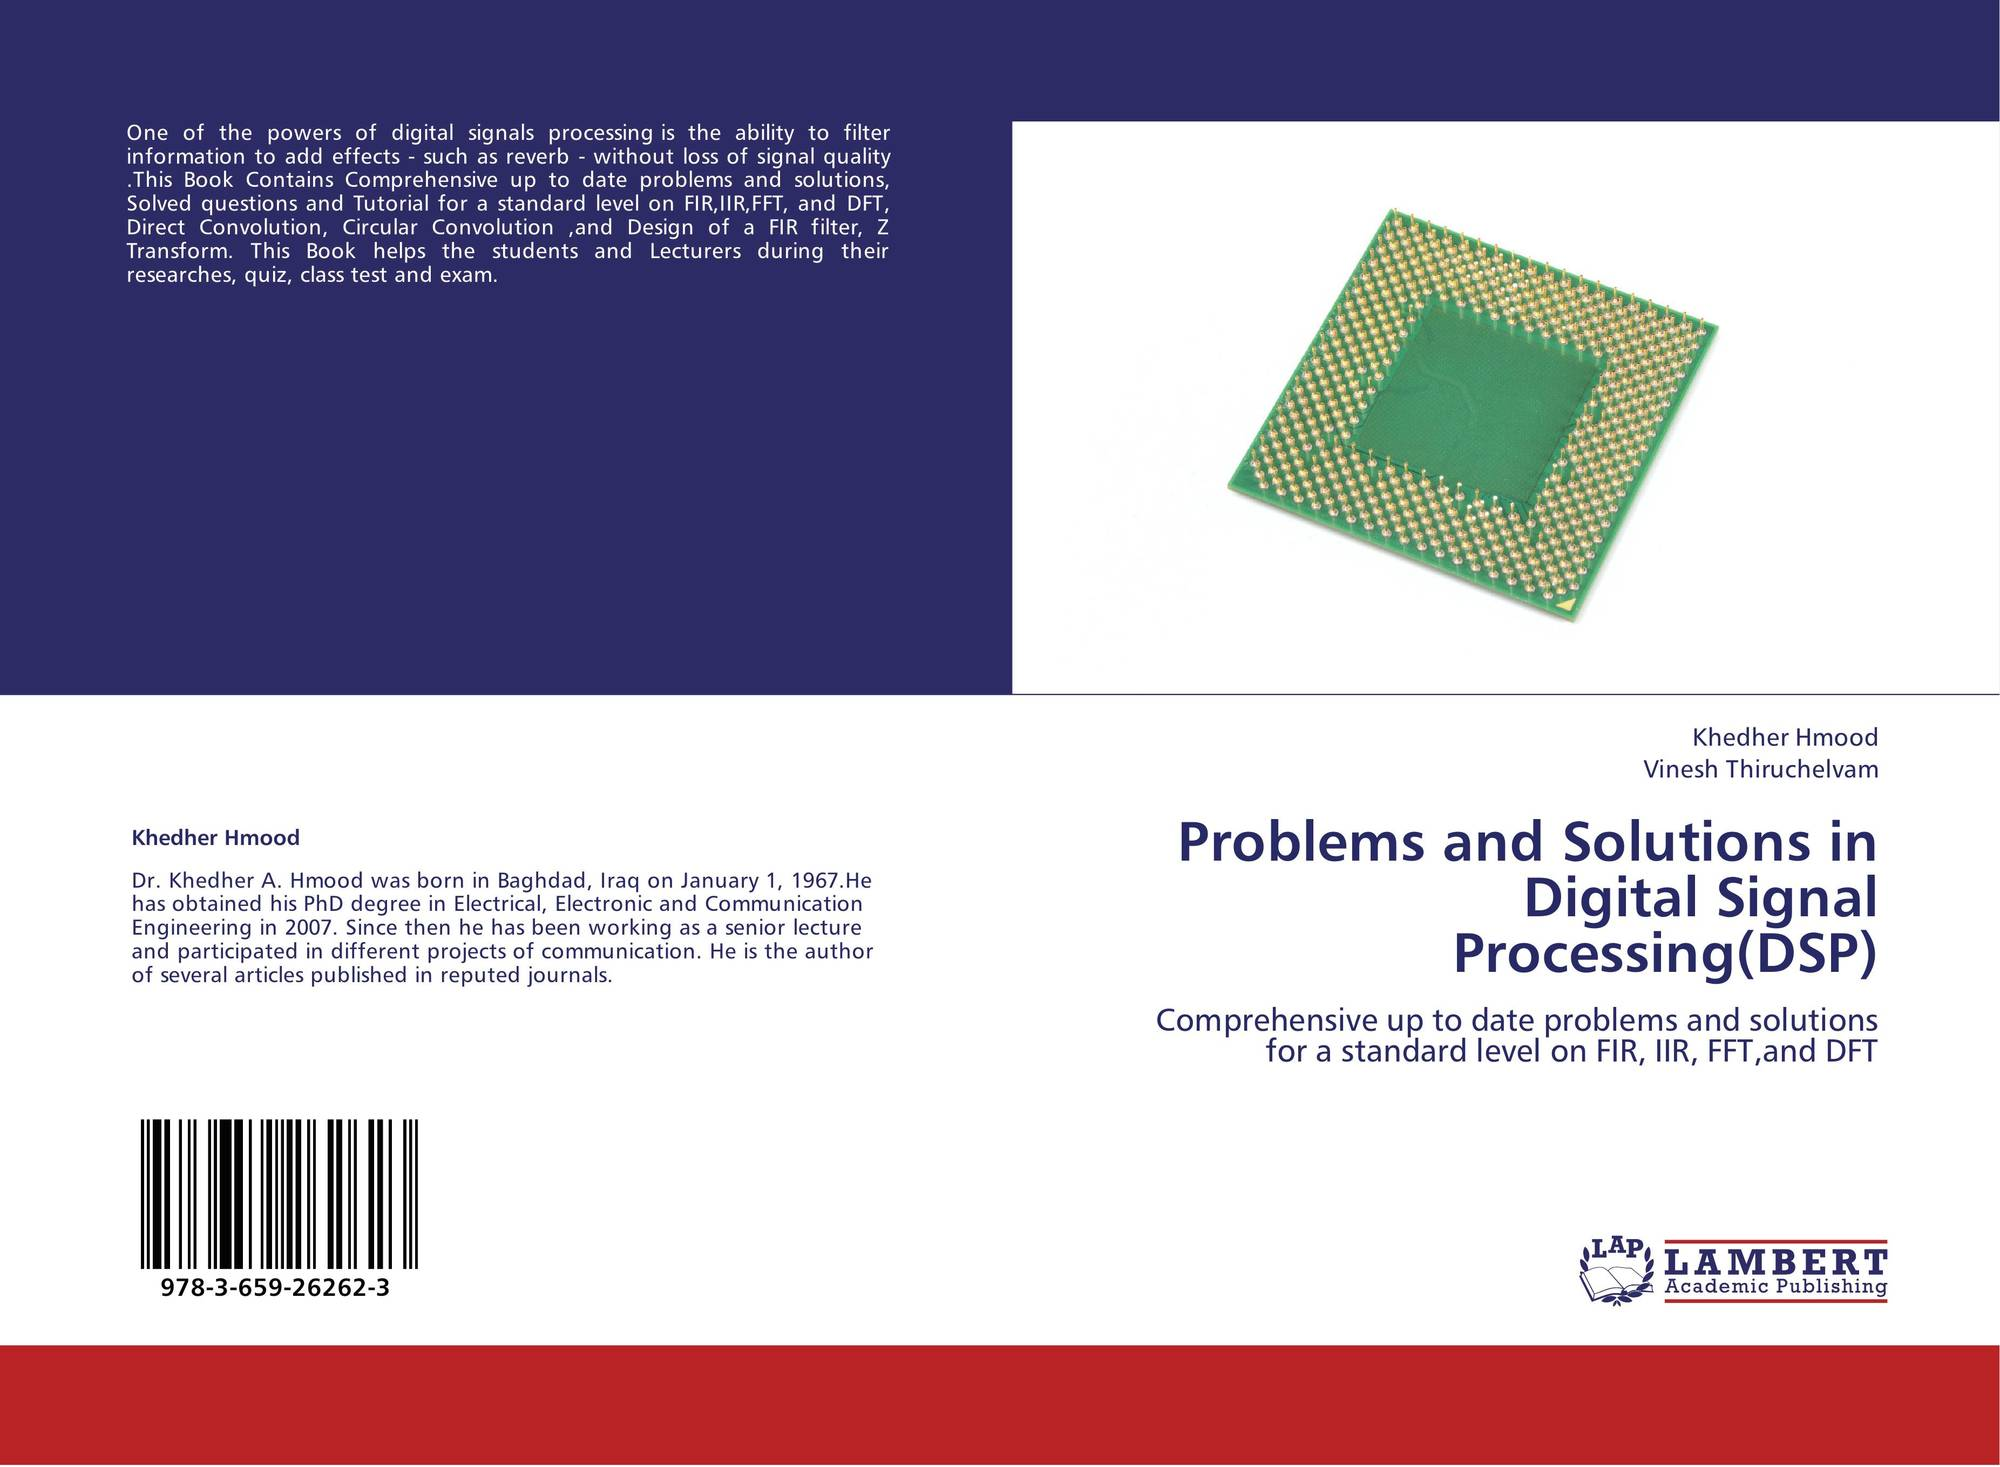 Problems and Solutions in Digital Signal Processing(DSP